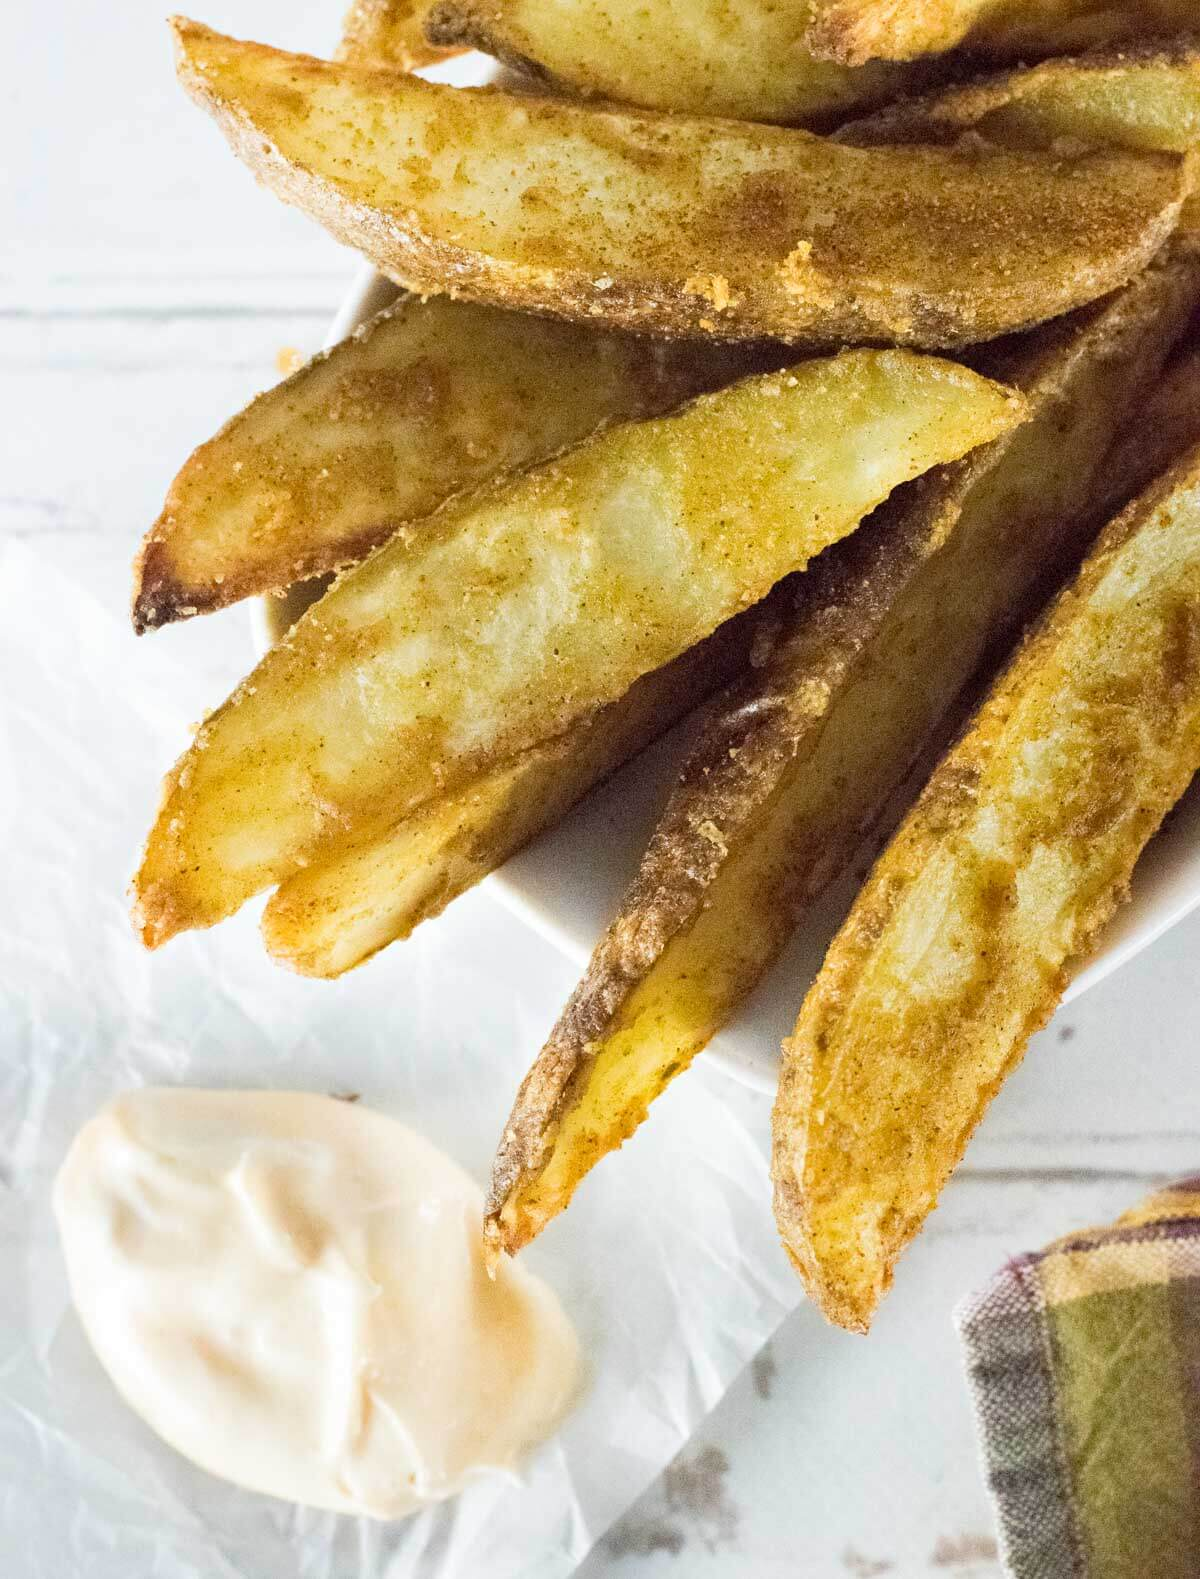 Cajun potato wedges with dipping sauce on wax paper.